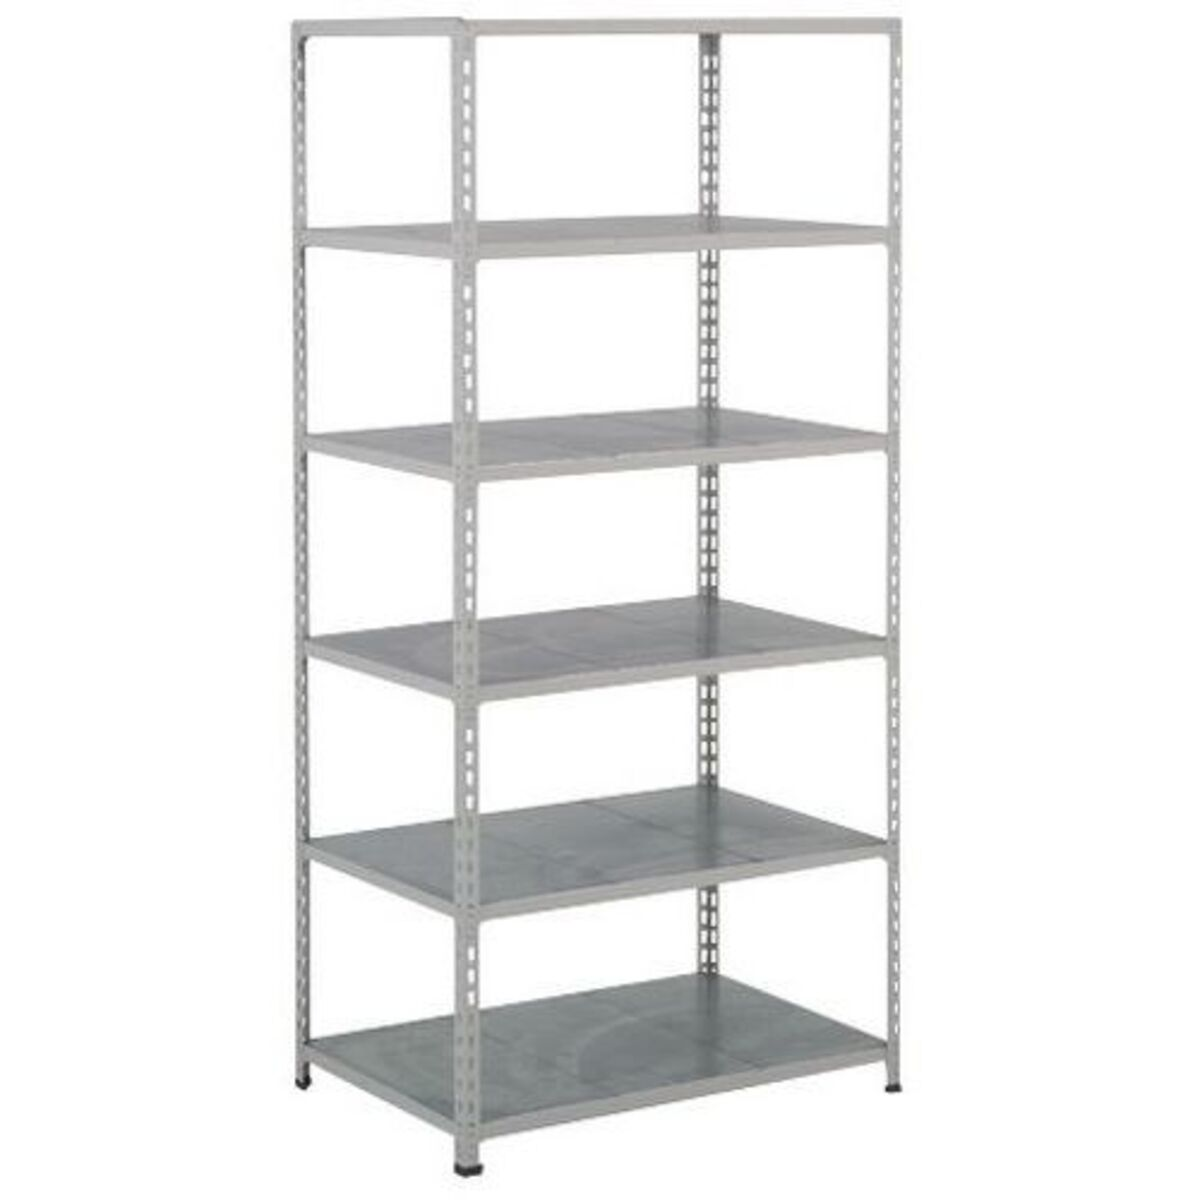 Rayonnage Rapid 2 6 tablettes 1830x915x610 gris clair